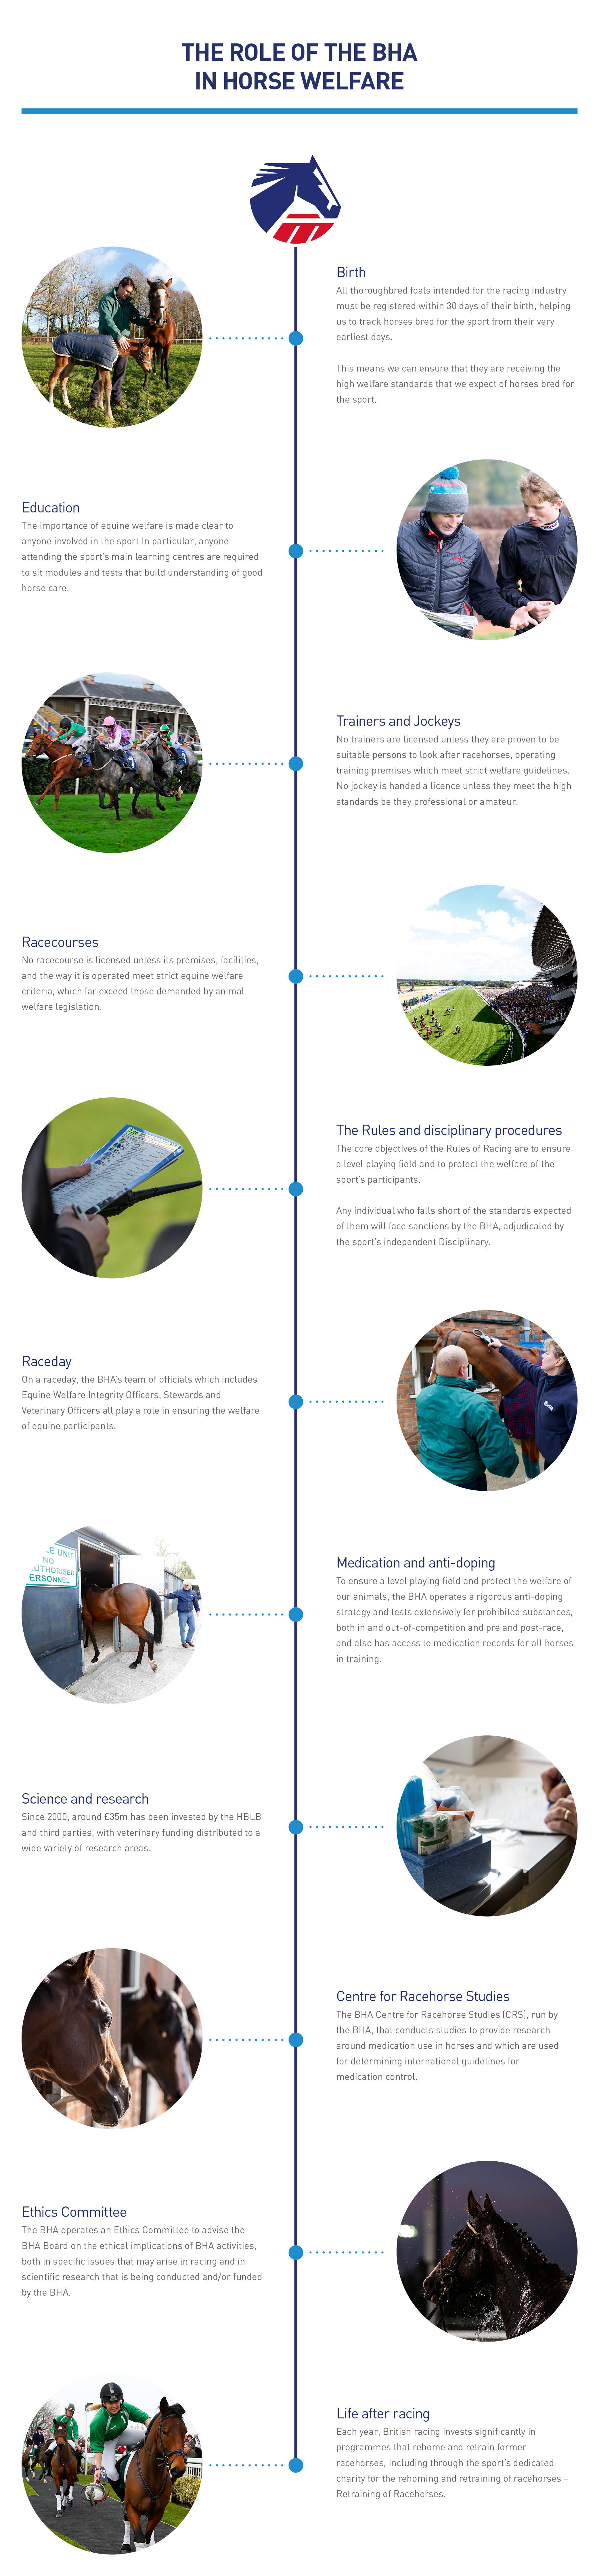 British Horseracing Authority BHA | Our role in horse welfare